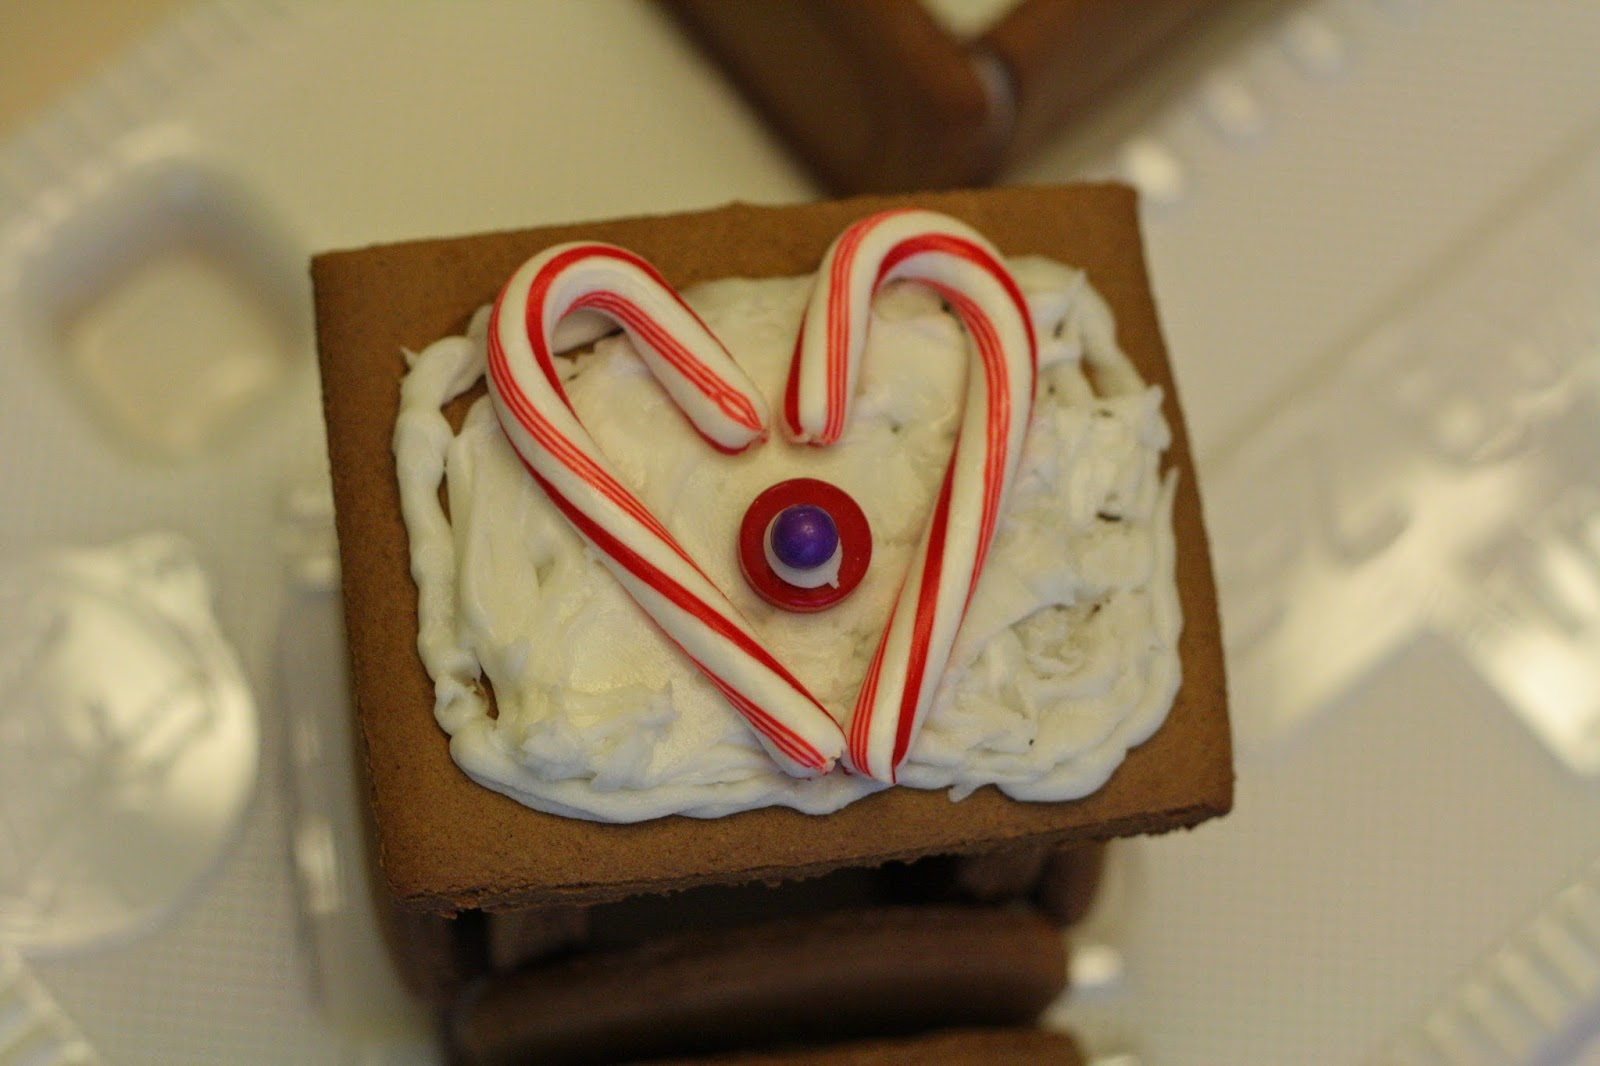 candy cane, gingerbread, love, heart, Christmas